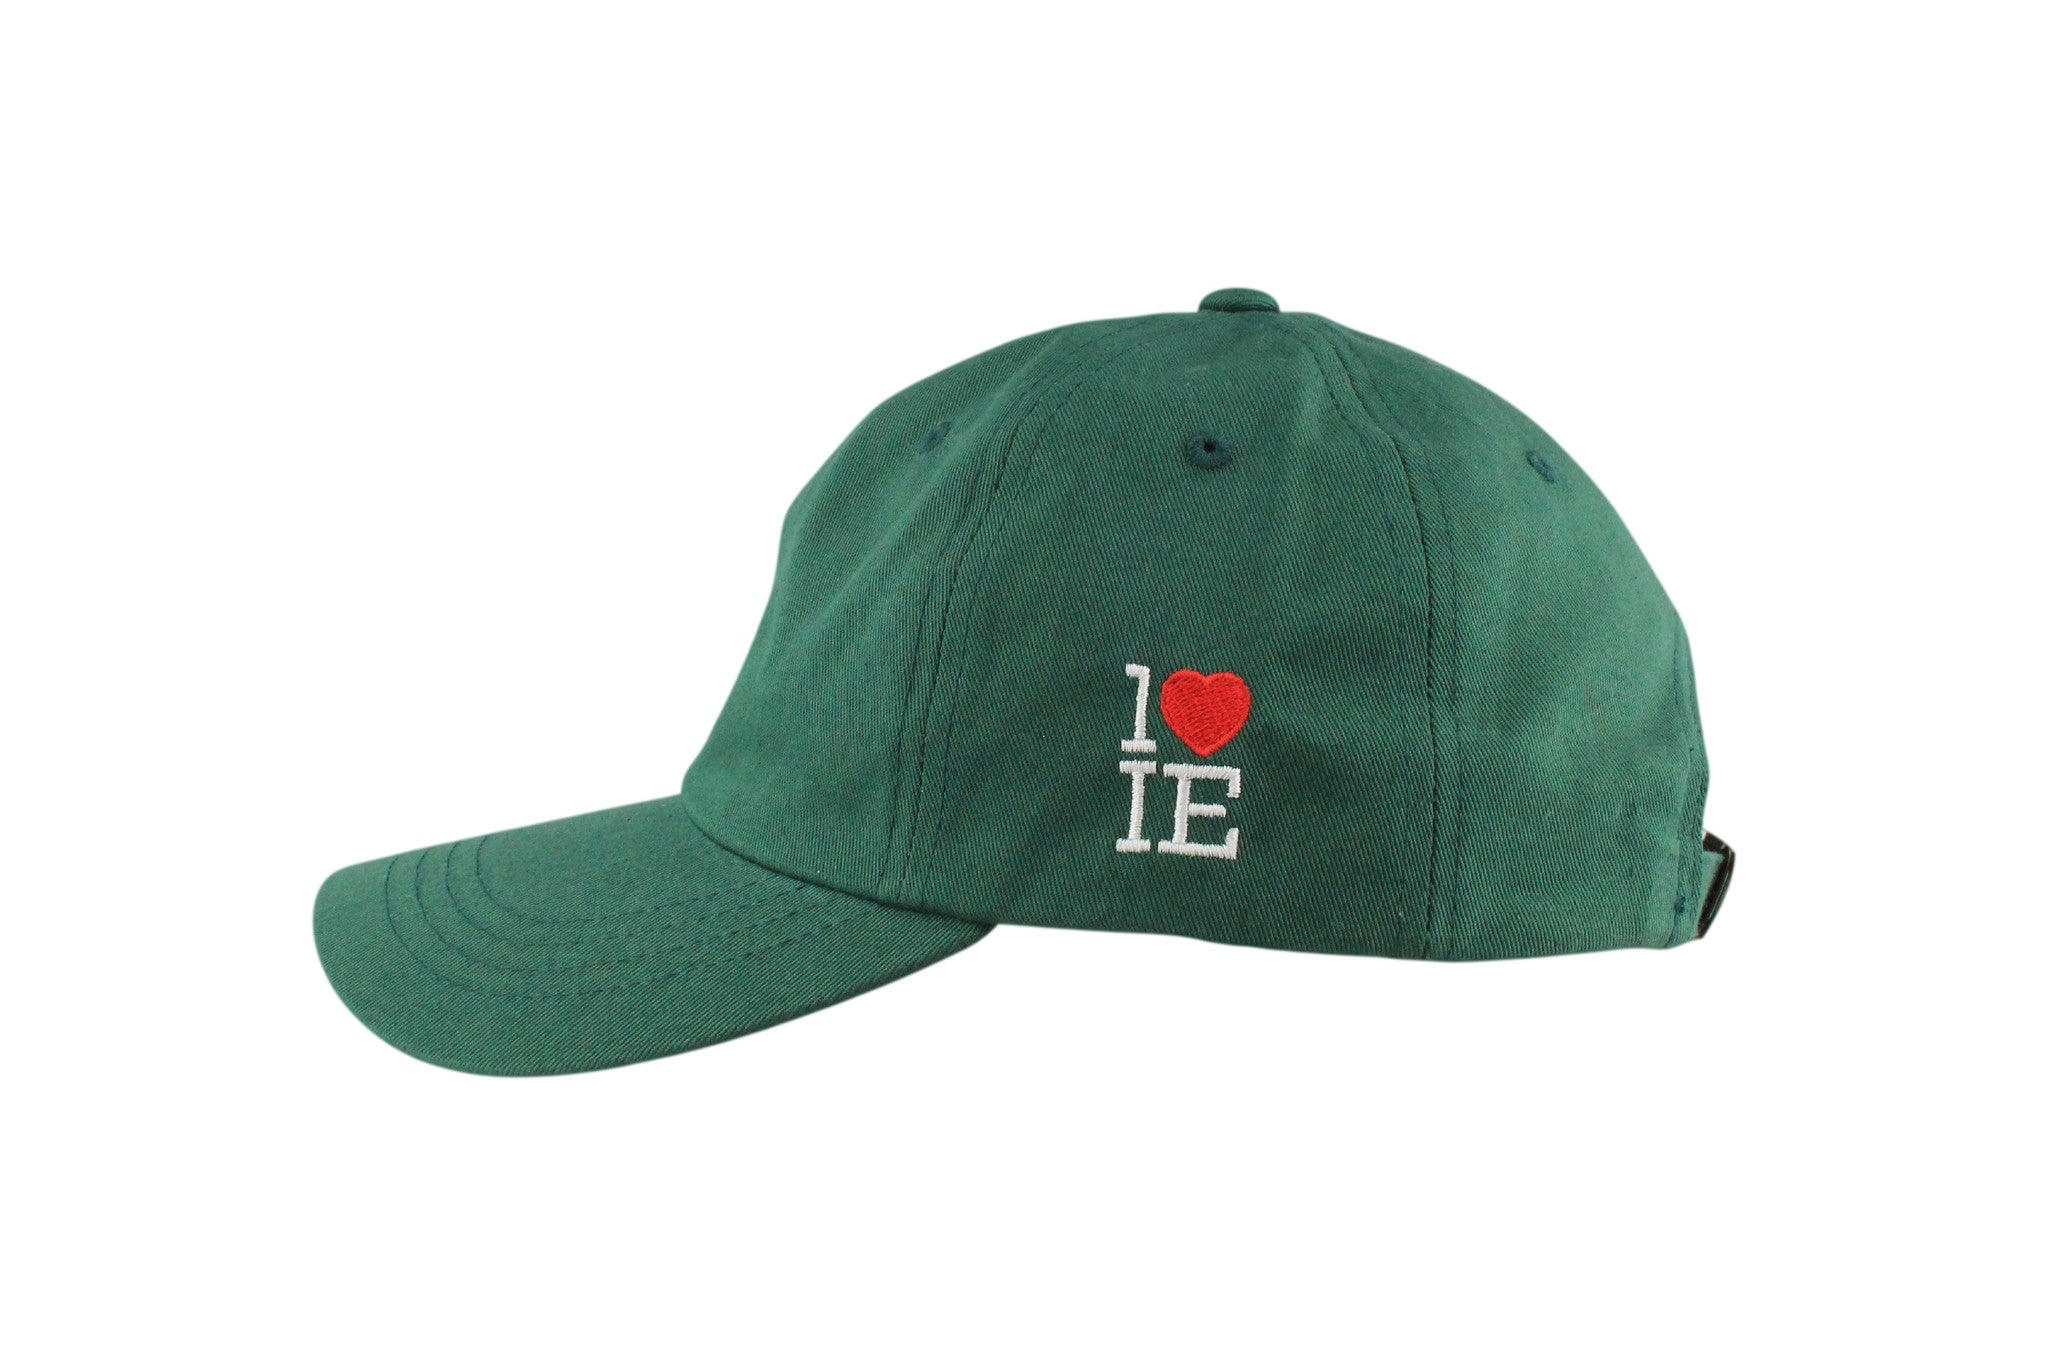 6adc5e75843 Sail Boat Signature Dad Hat (Delicate Green   Red) – 1LoveIE